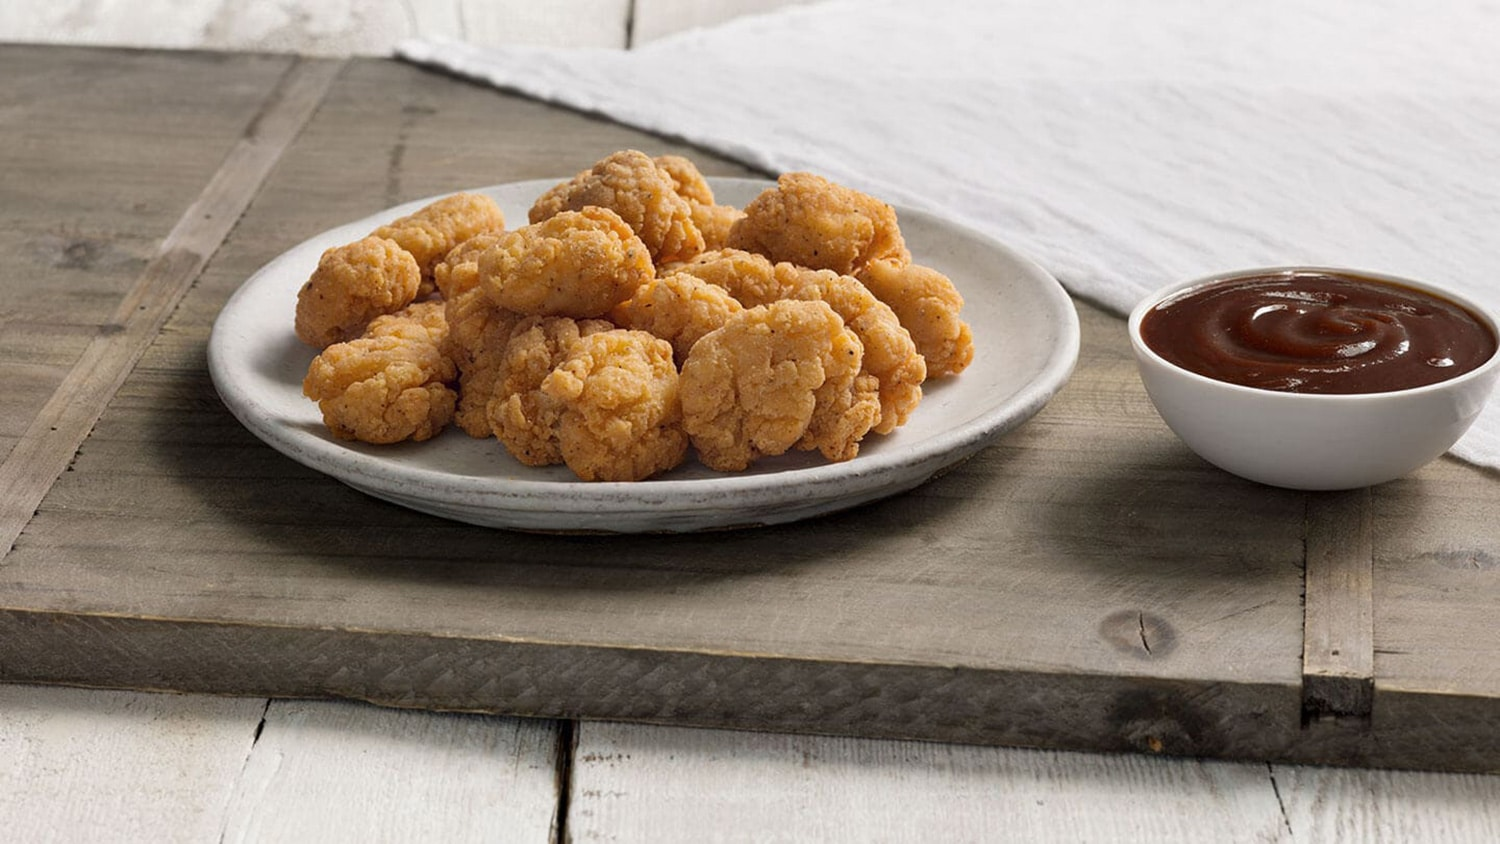 KFC to create 3D-bioprinted, laboratory-produced chicken nuggets